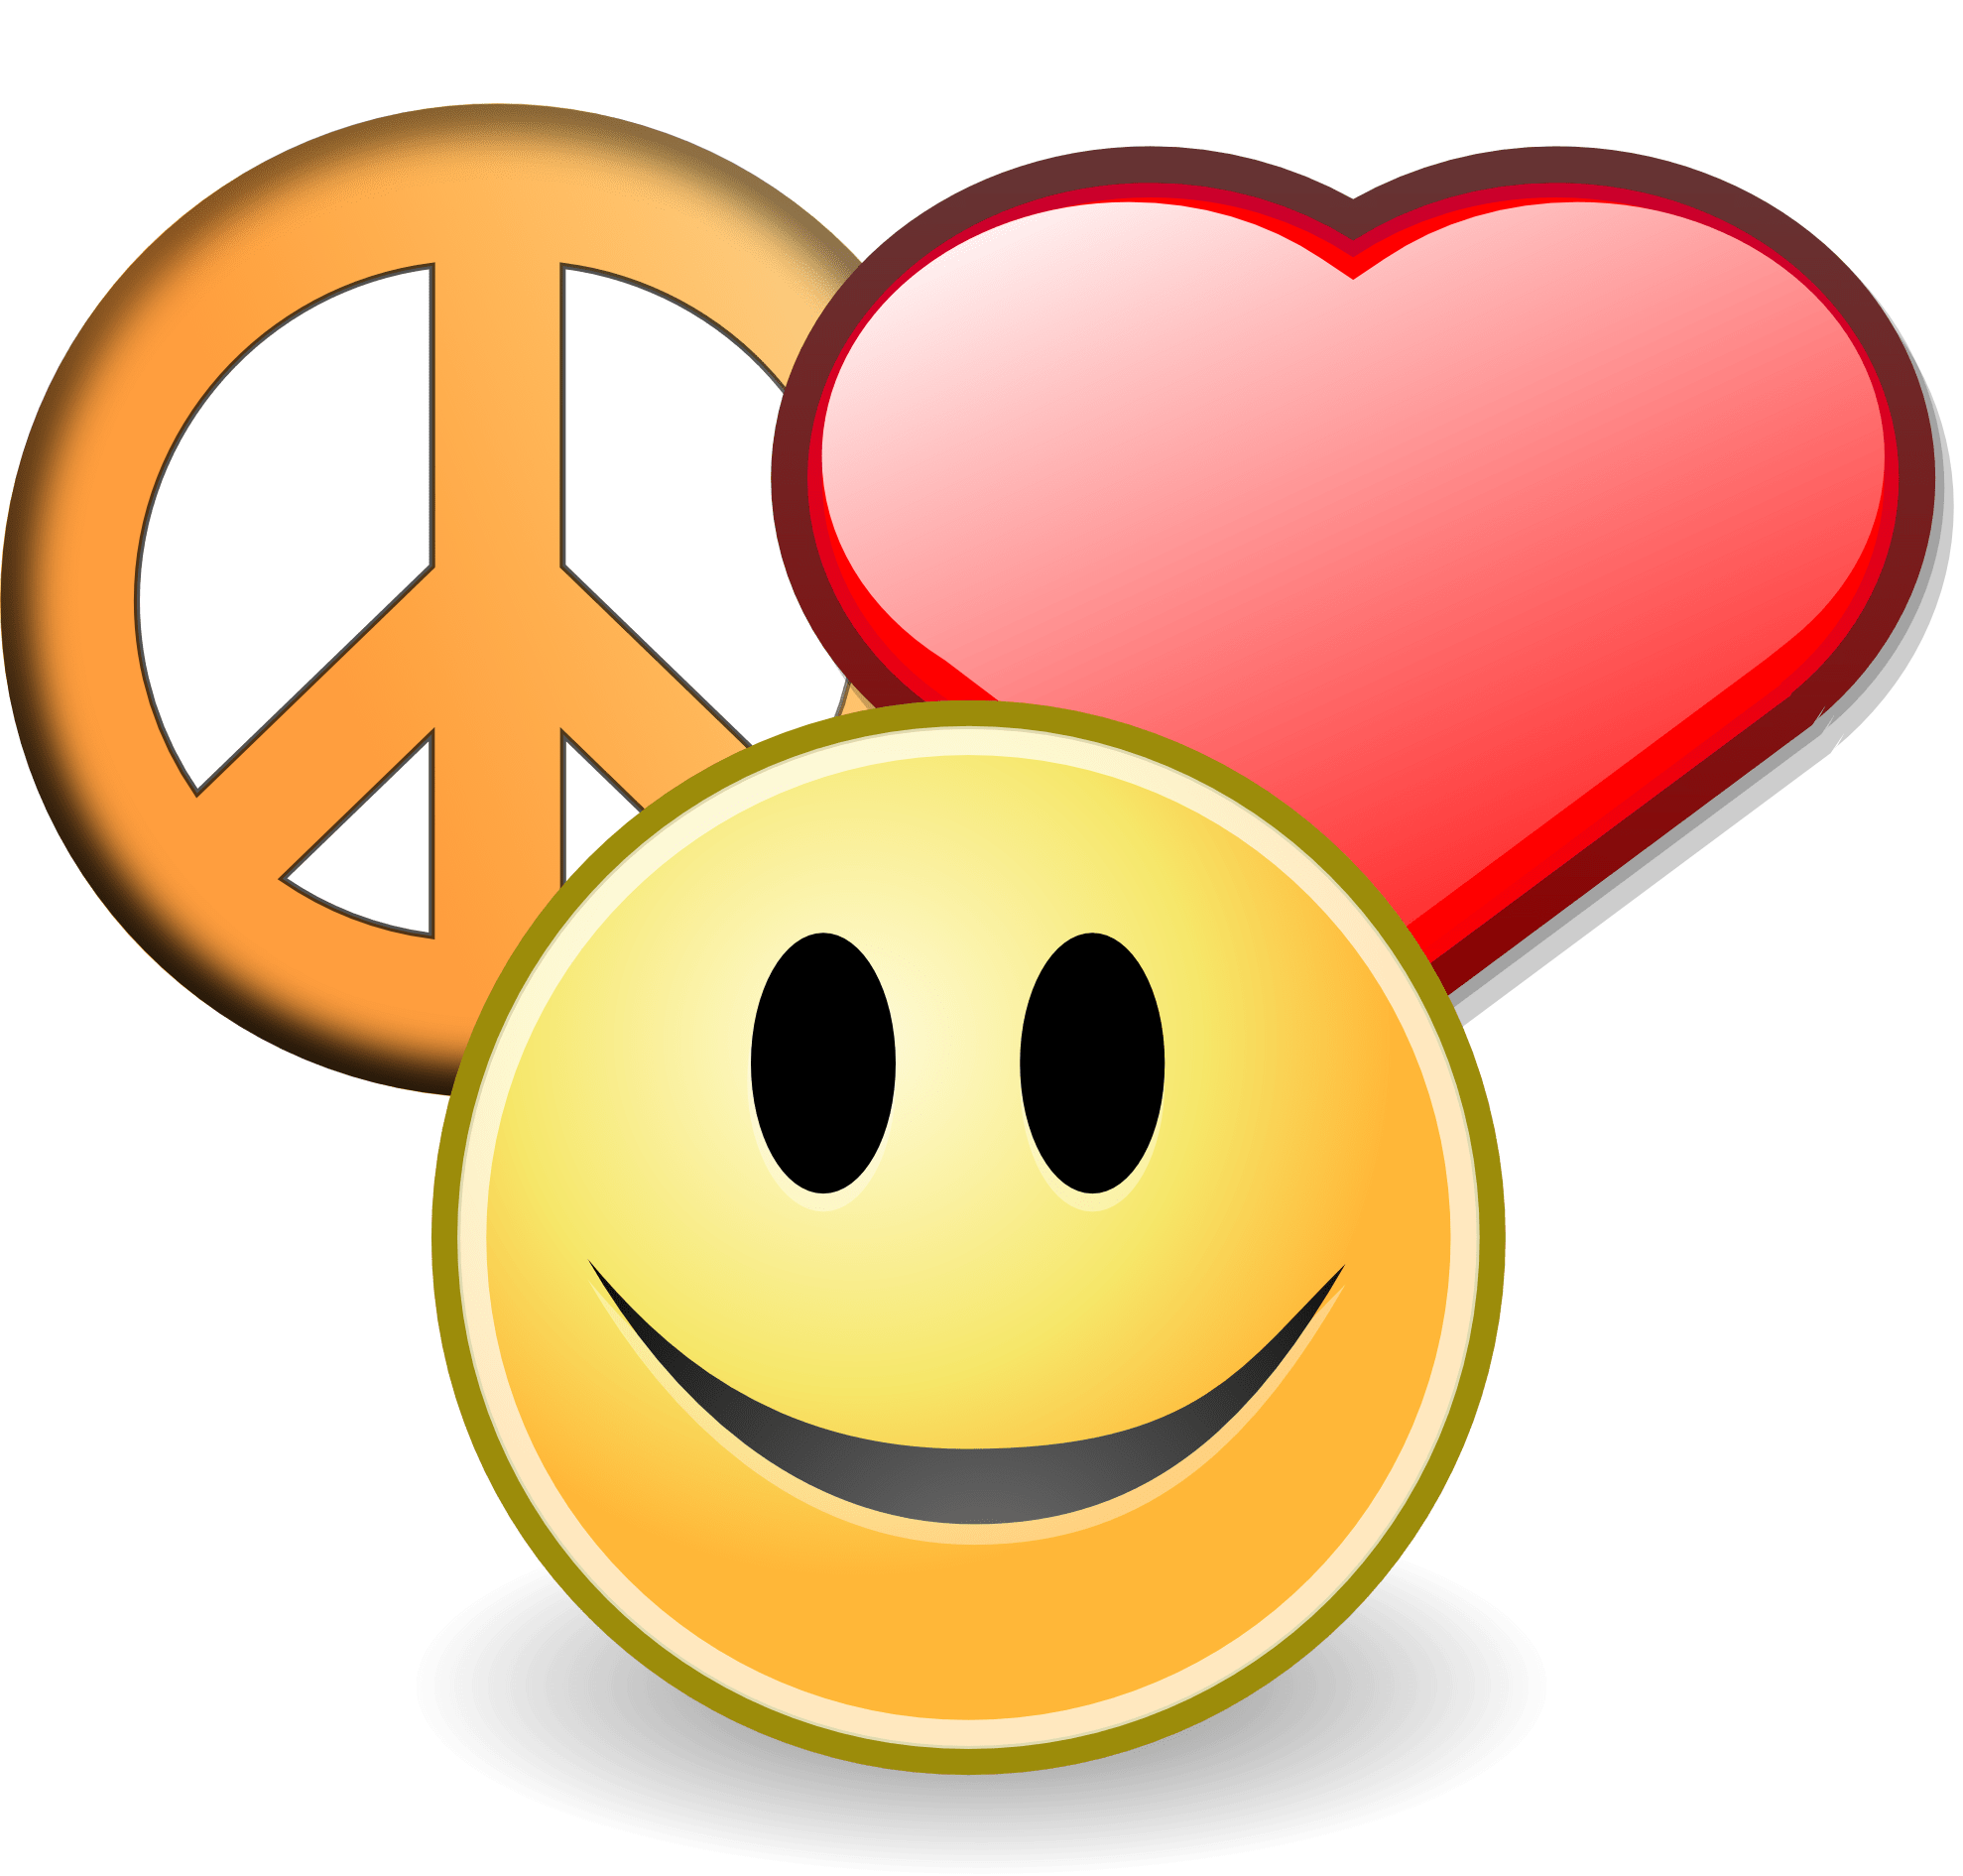 hight resolution of peace sign clipart